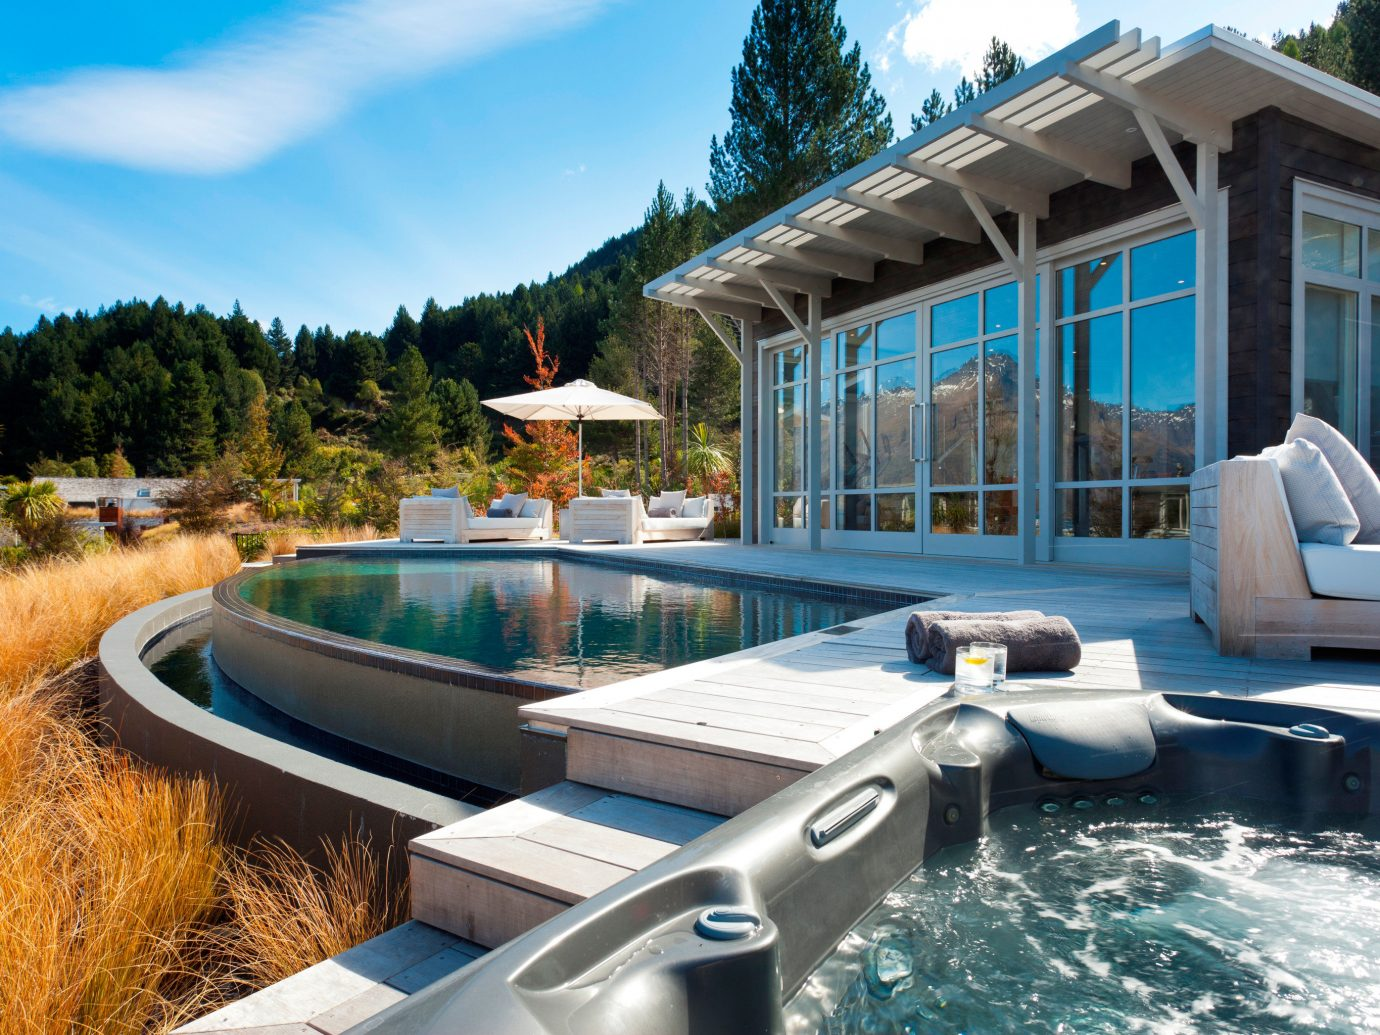 Trip Ideas outdoor sky swimming pool leisure property vacation estate vehicle Resort home Villa real estate backyard Deck